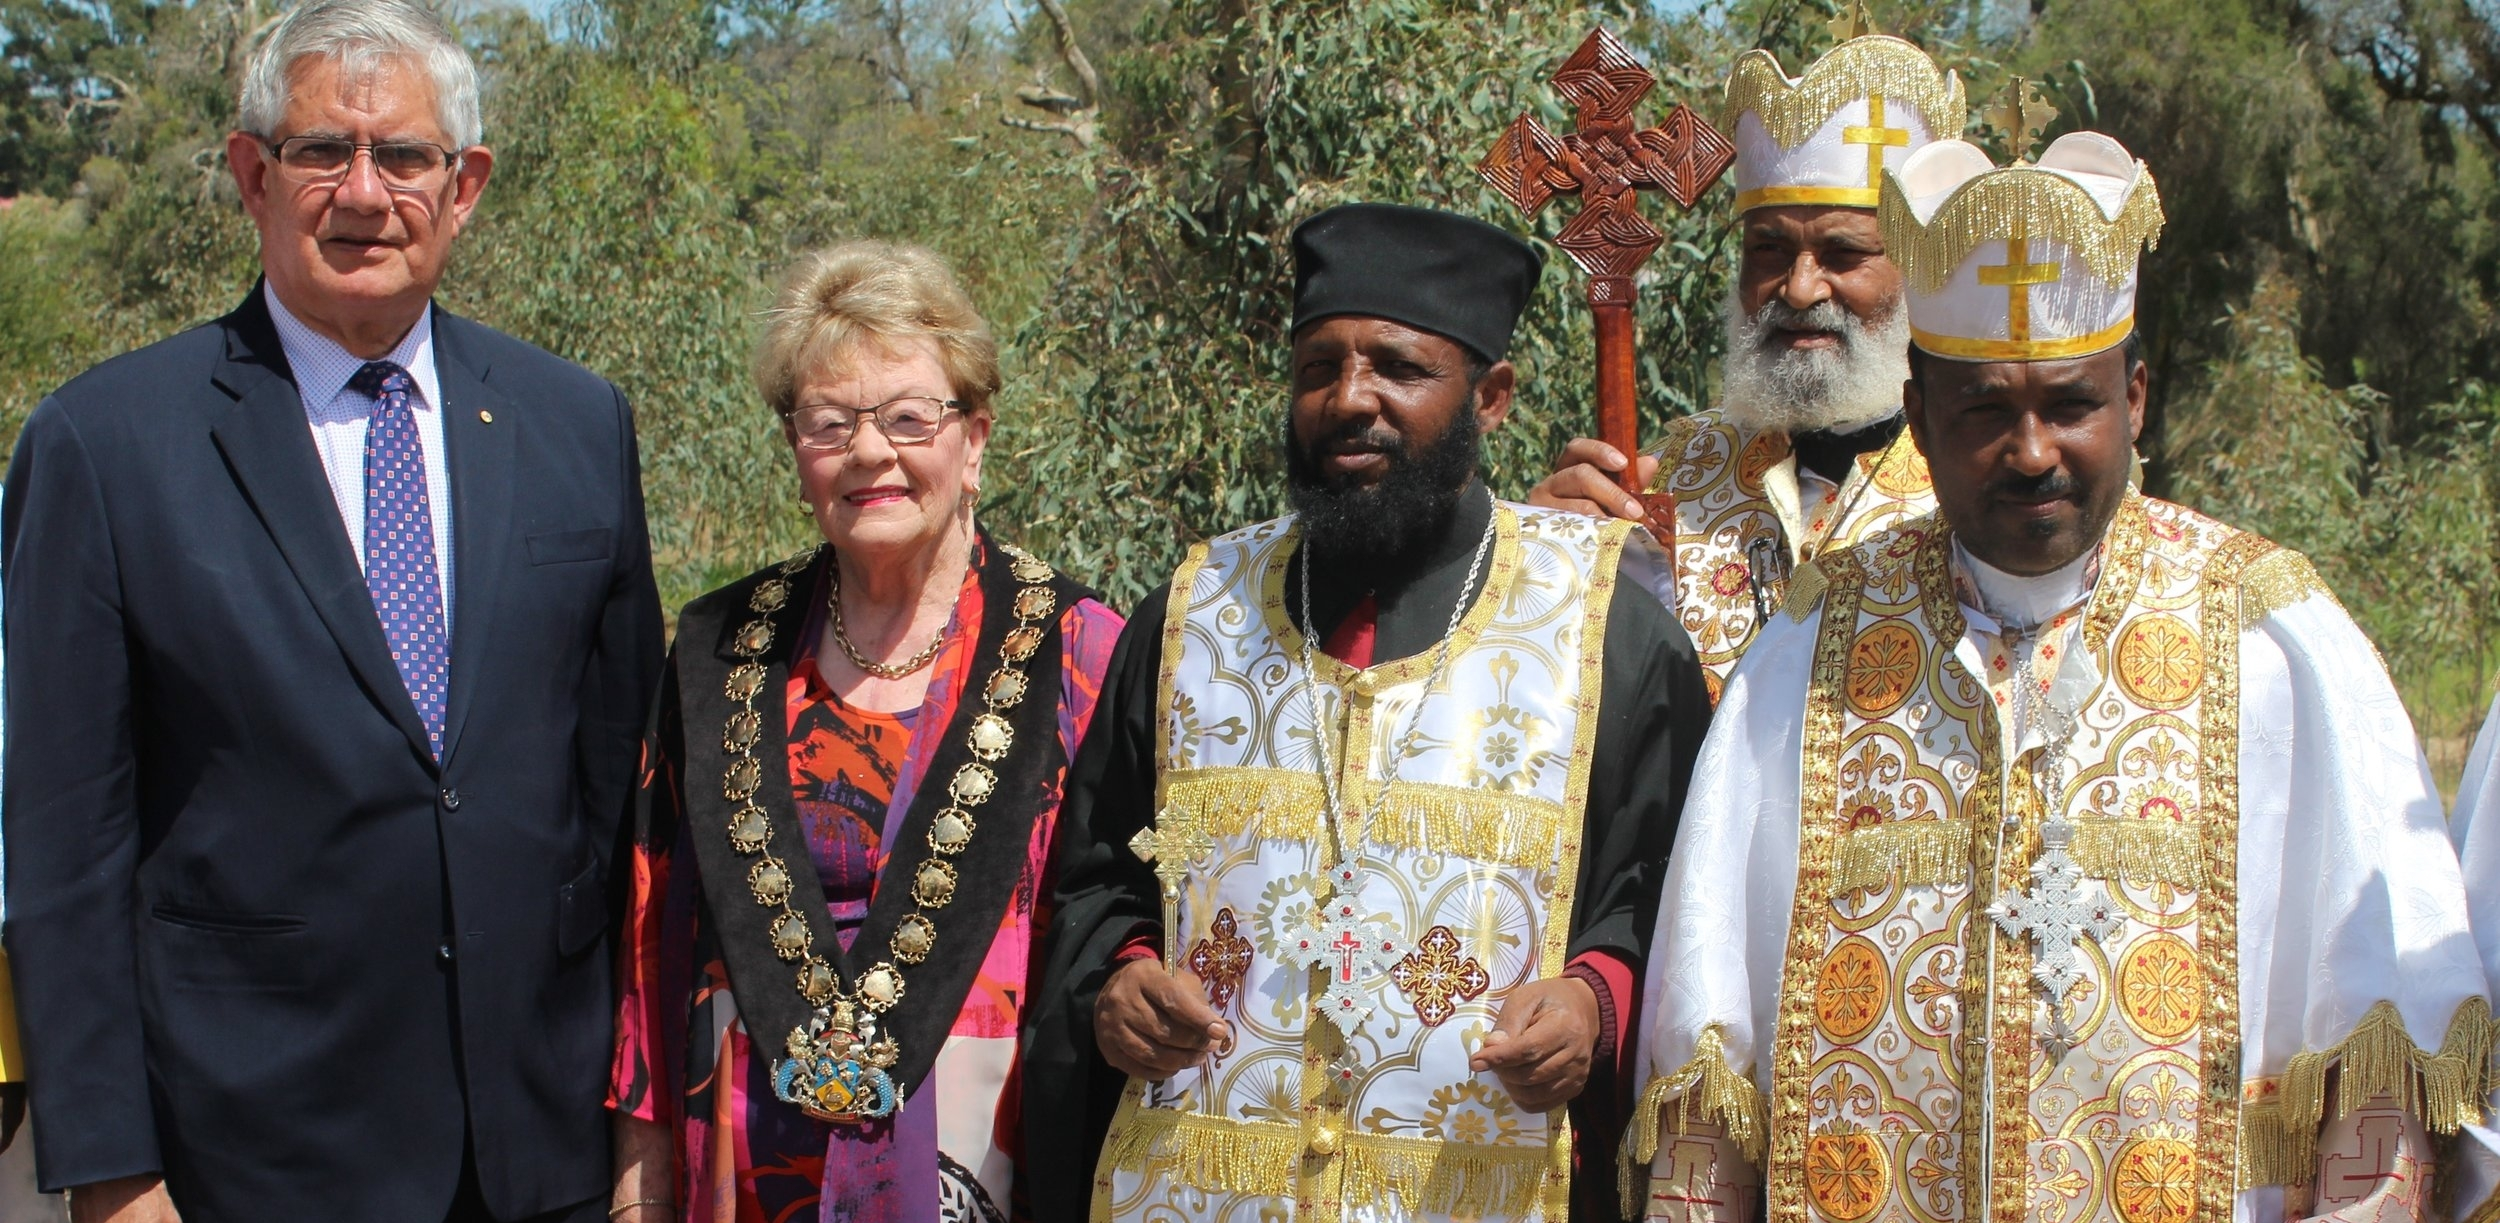 """""""Many thanks and appreciation for all the Hon Minister Ken Wyatt has done for our Church in being proclaimed as a Recognised Denomination. We are so blessed and grateful for all of the support. Thank you again!""""    Ethiopian Orthodox Tewahedo Debre Amin Abune Teklehaimanot Church Inc., Kenwick     Read more"""